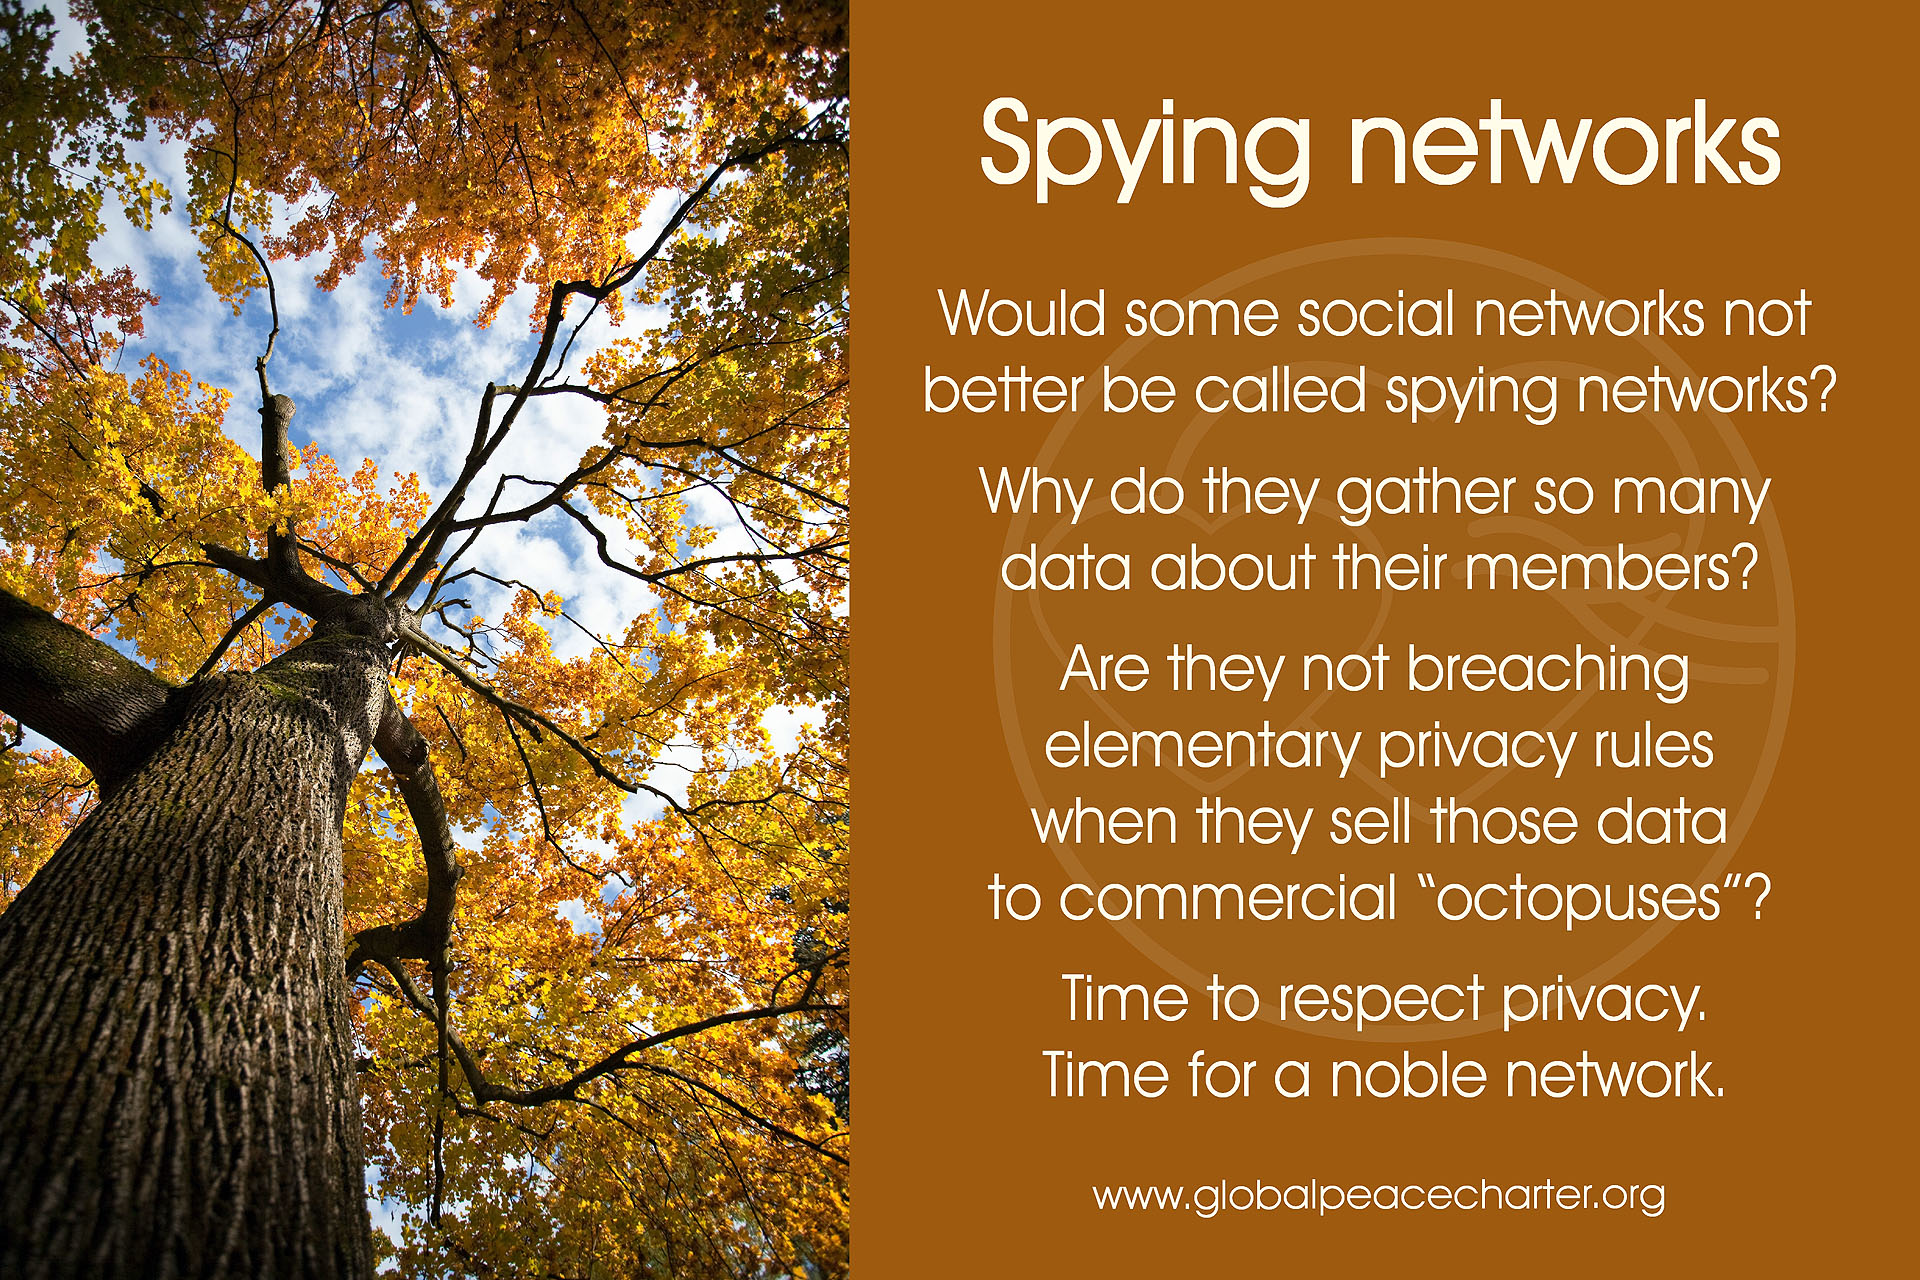 Spying networks